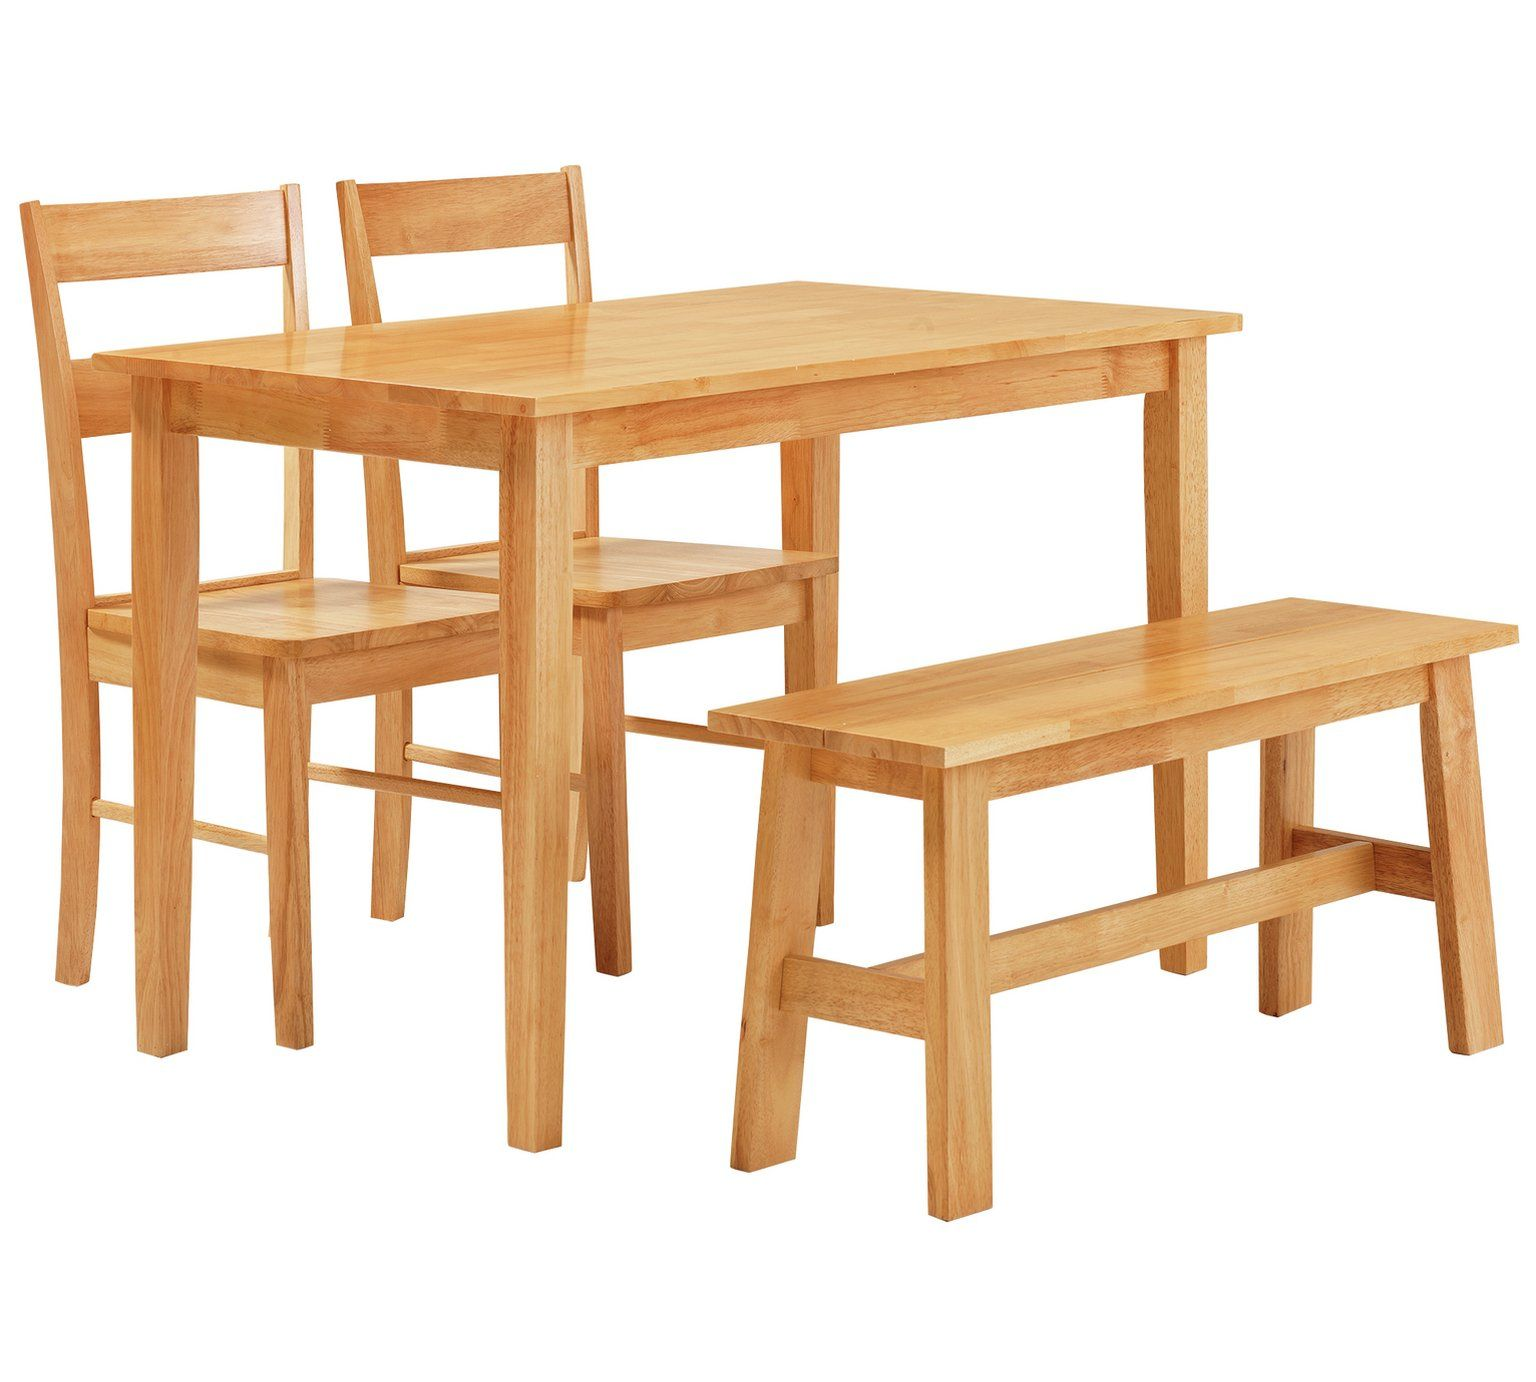 Buy Argos Home Chicago Dining Table, Bench & 2 Chairs